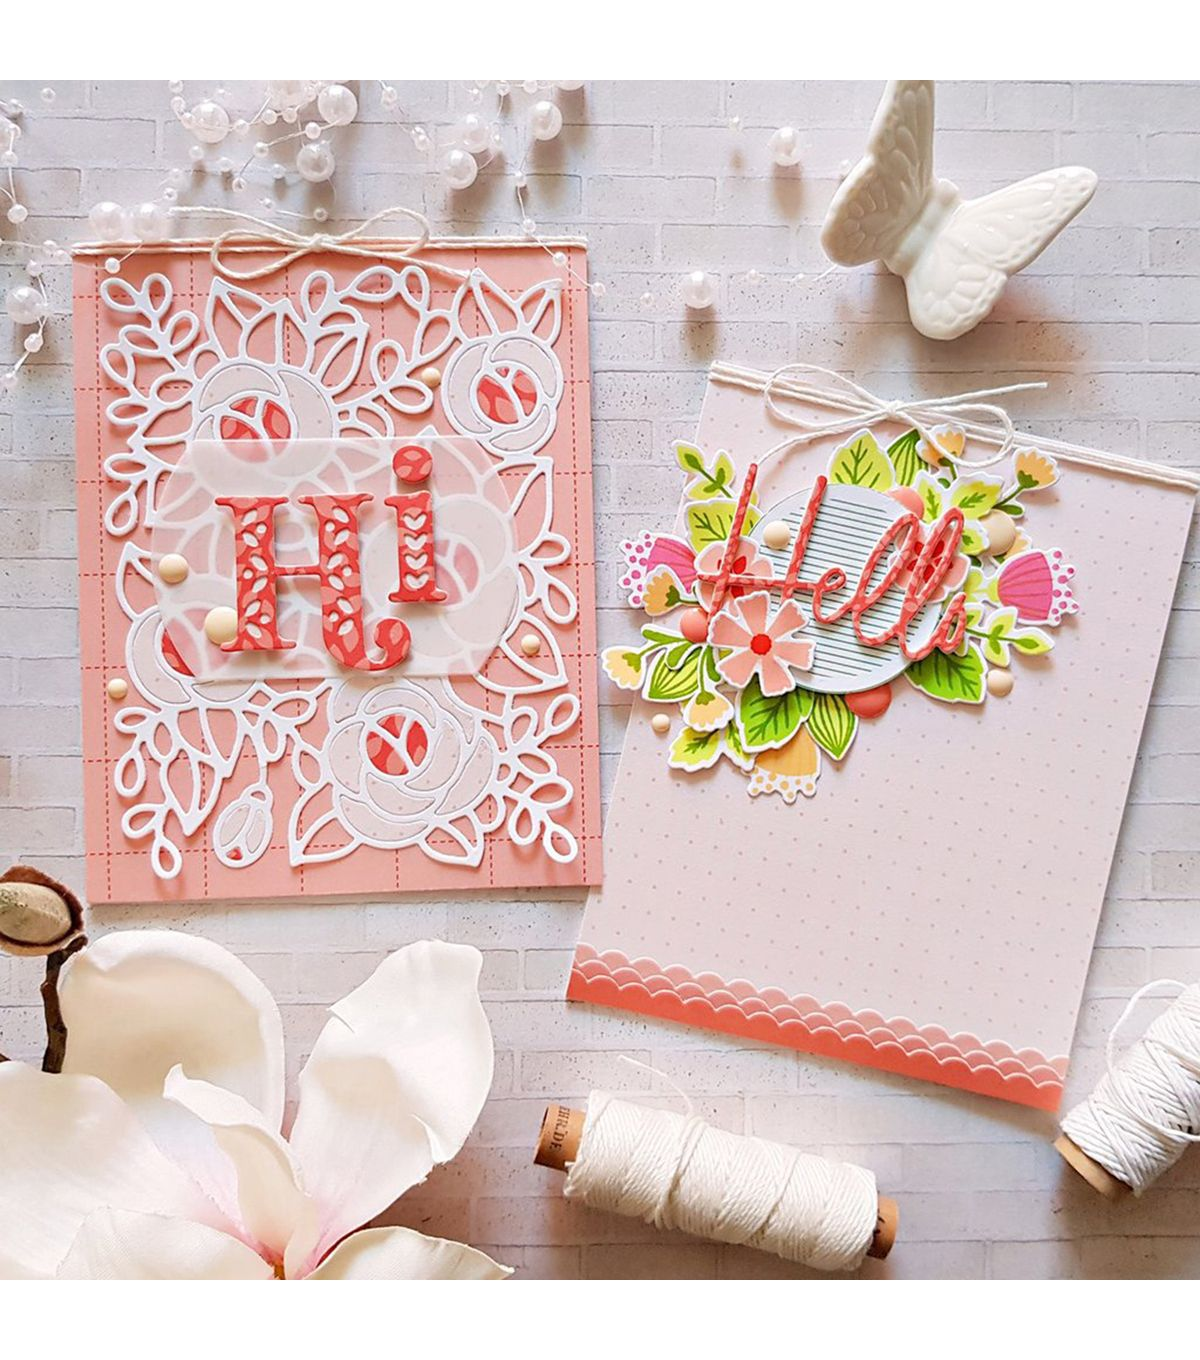 Pinkfresh Studio Die Kelly Alpha Lower Case Joann Inspirational Cards Paper Craft Projects Shaped Cards